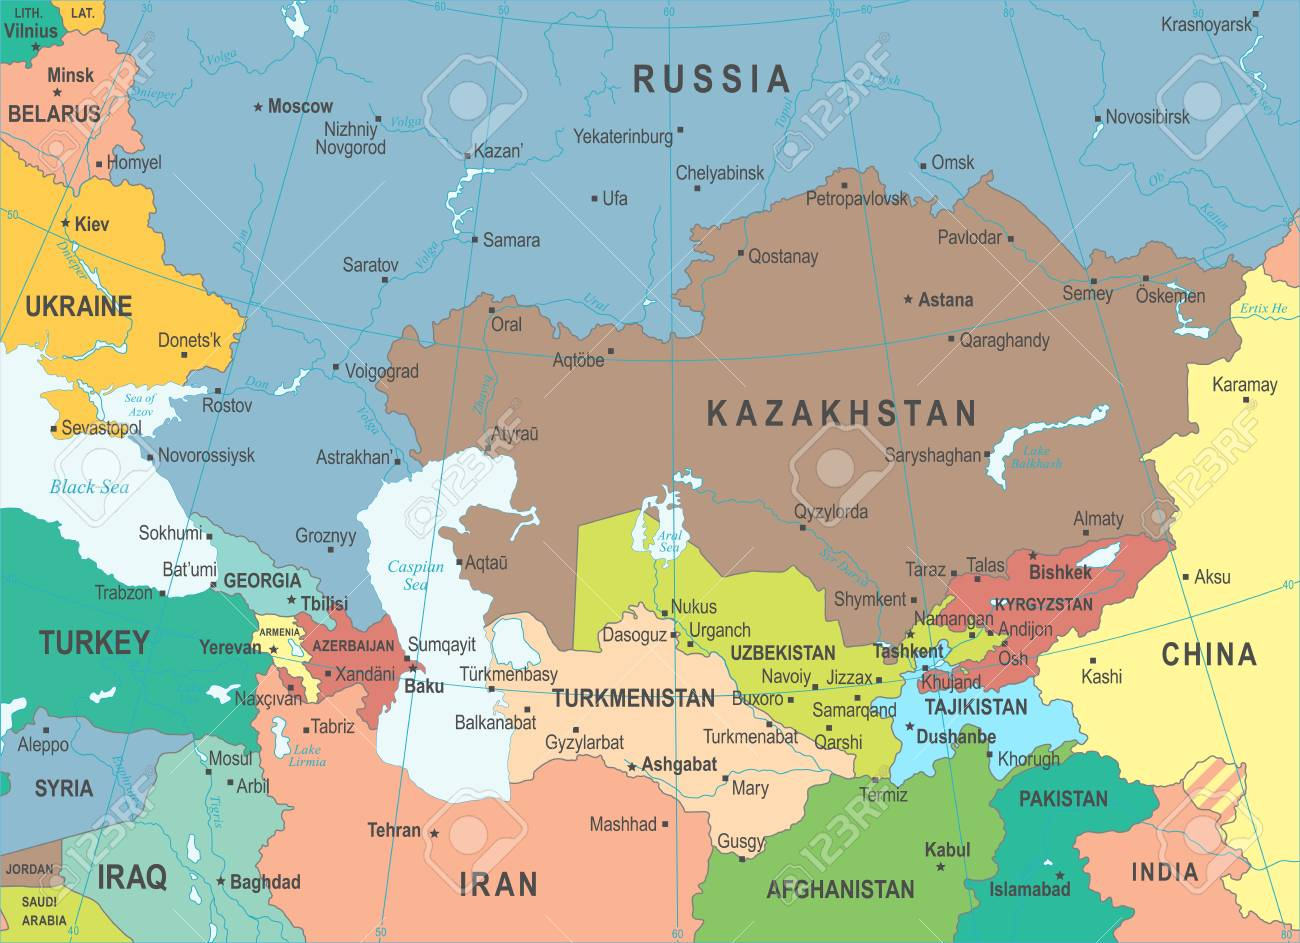 Caucasus And Central Asia Map - Detailed Vector Illustration Royalty ...